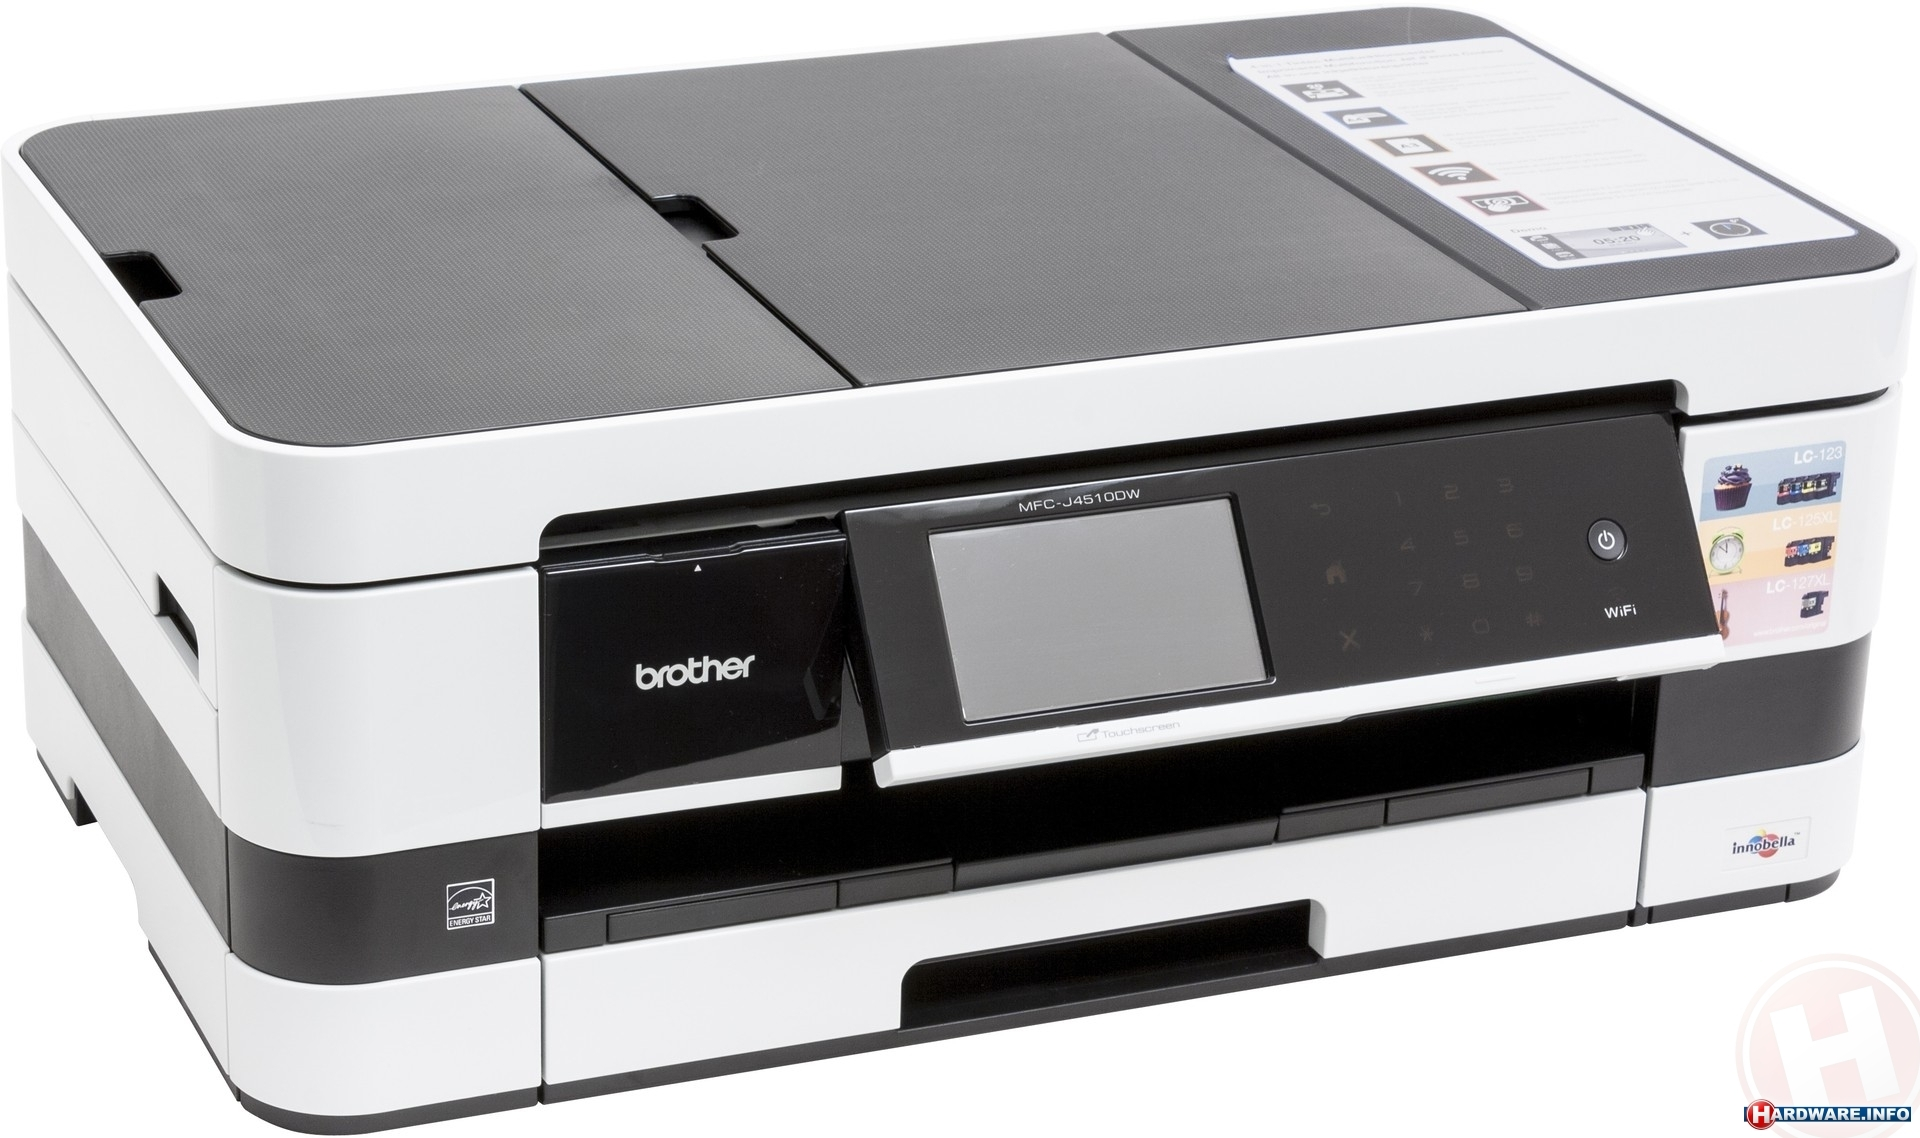 Brother MFC-J4510DW printer/all-in-one - Hardware Info